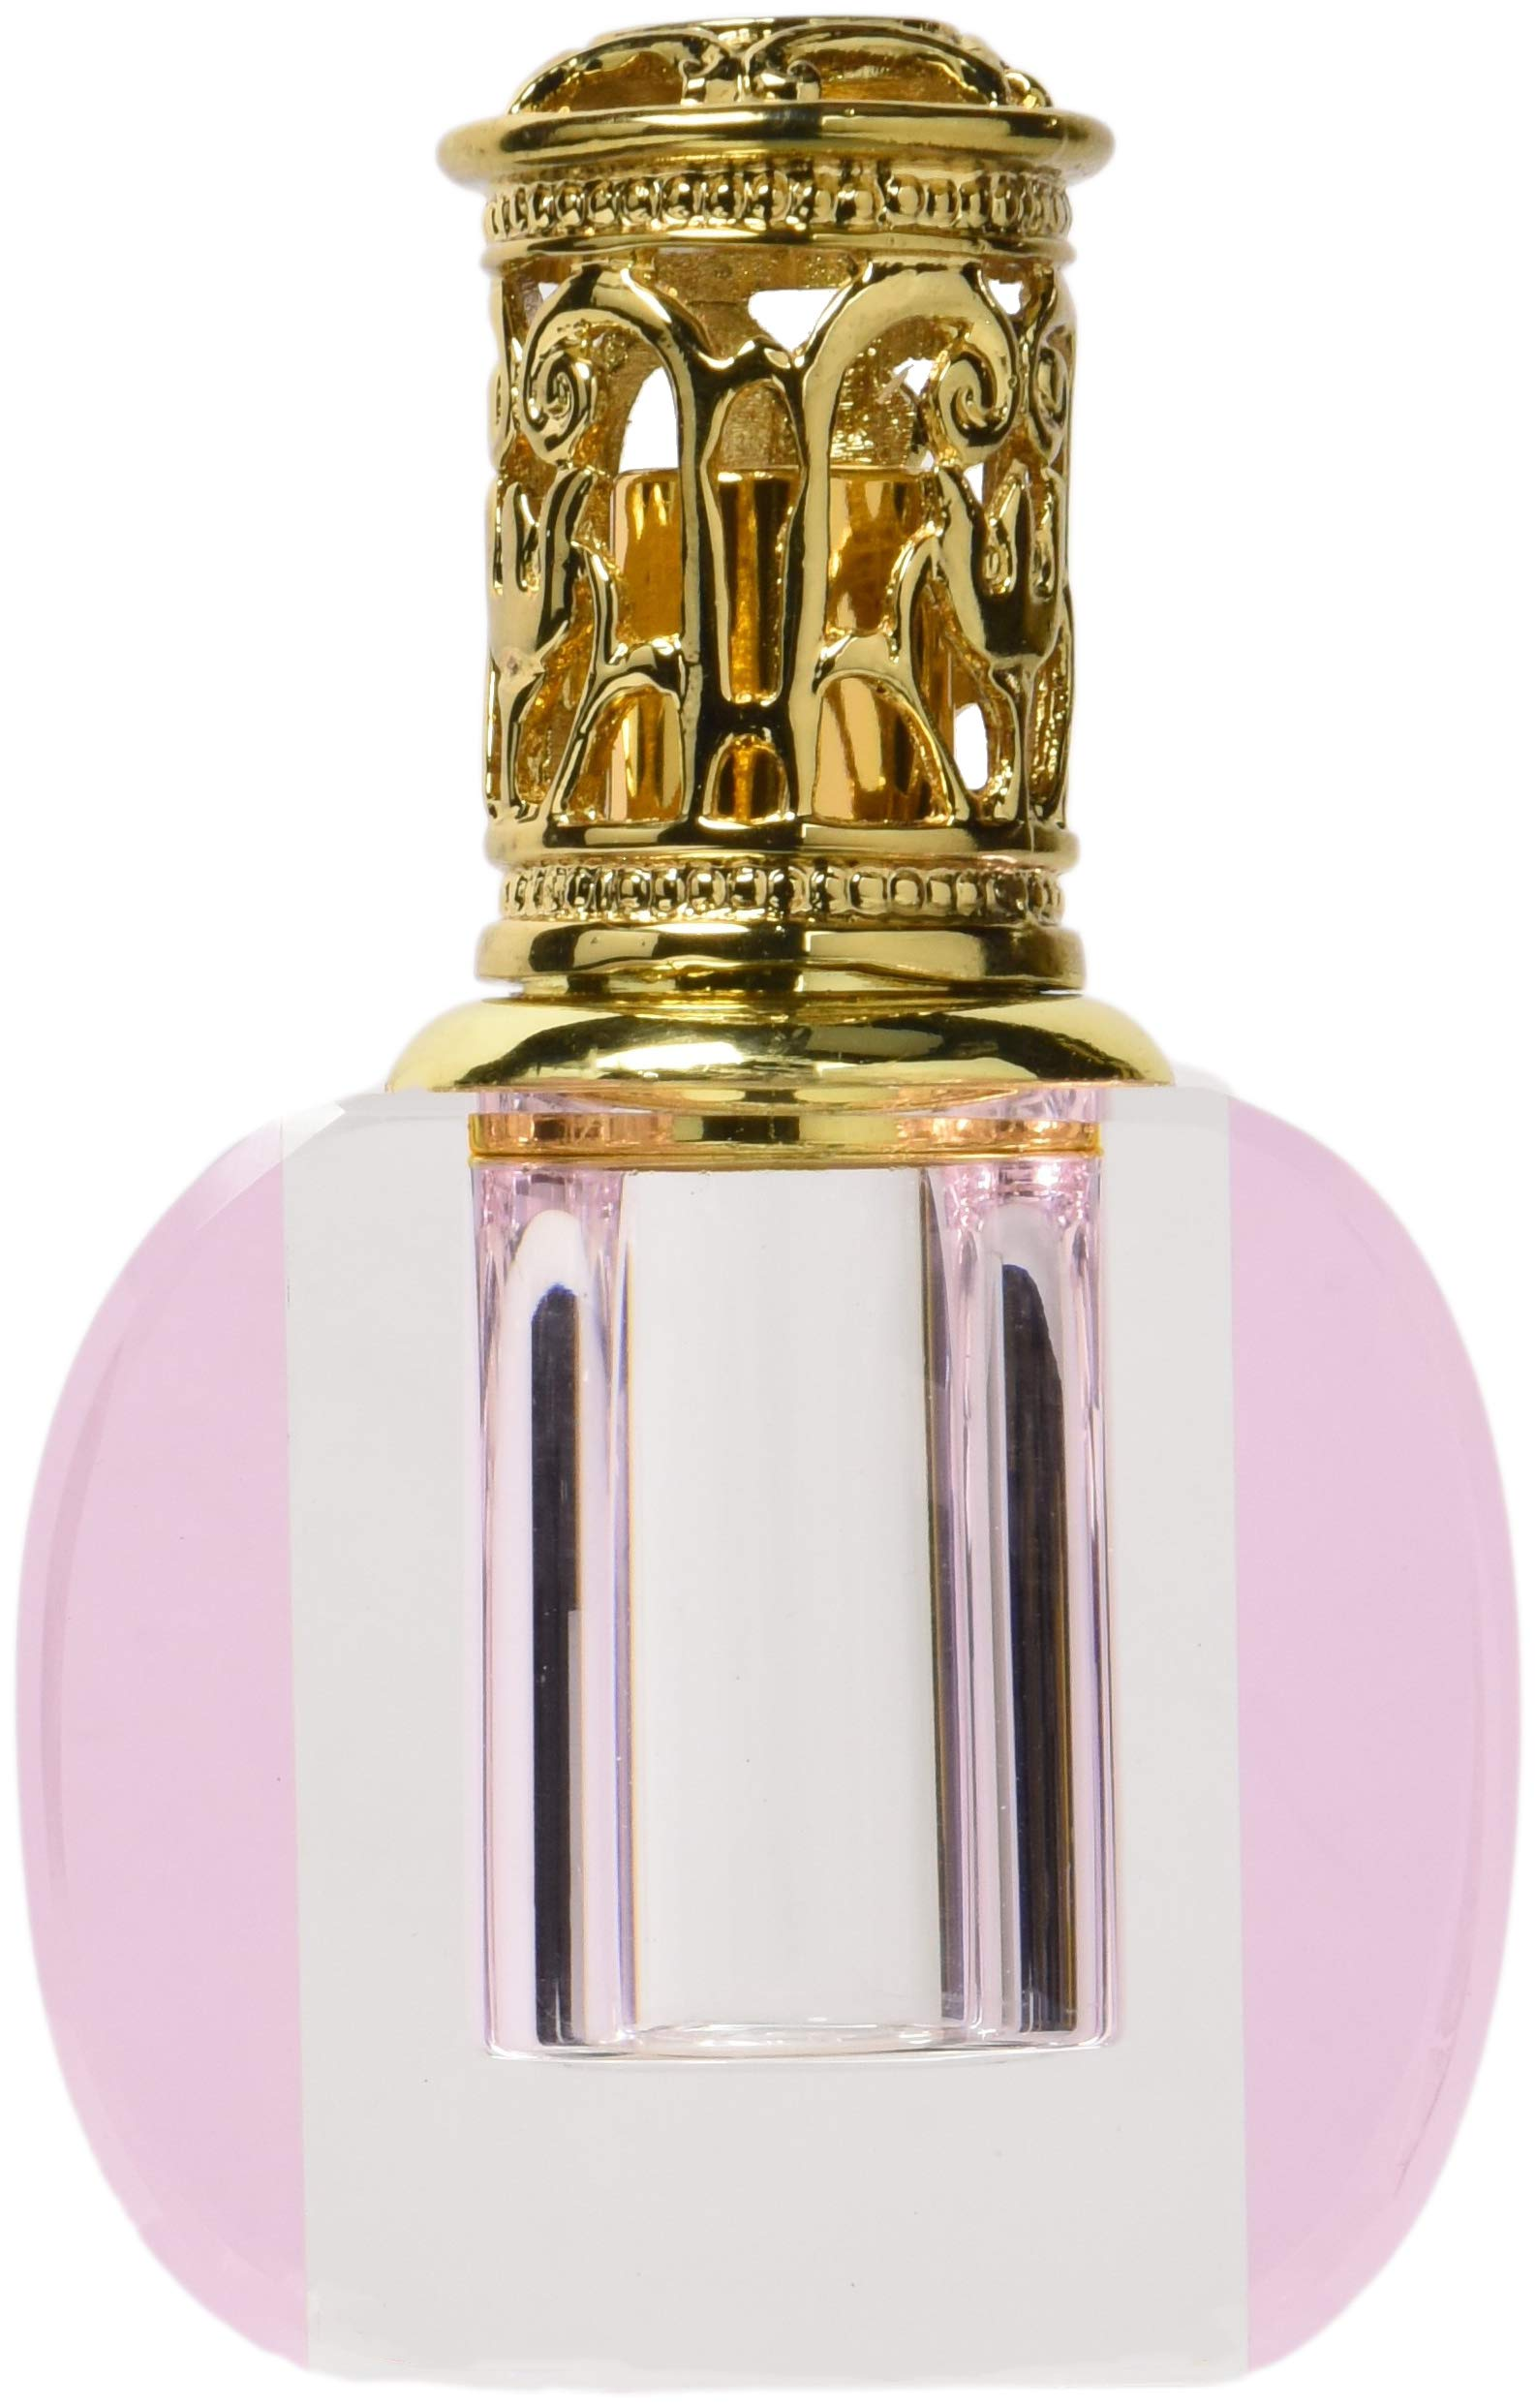 StealStreet CB-203A Pink Crystal Catalytic Fragrance Lamp with Gold Cap Aromatherapy Decor